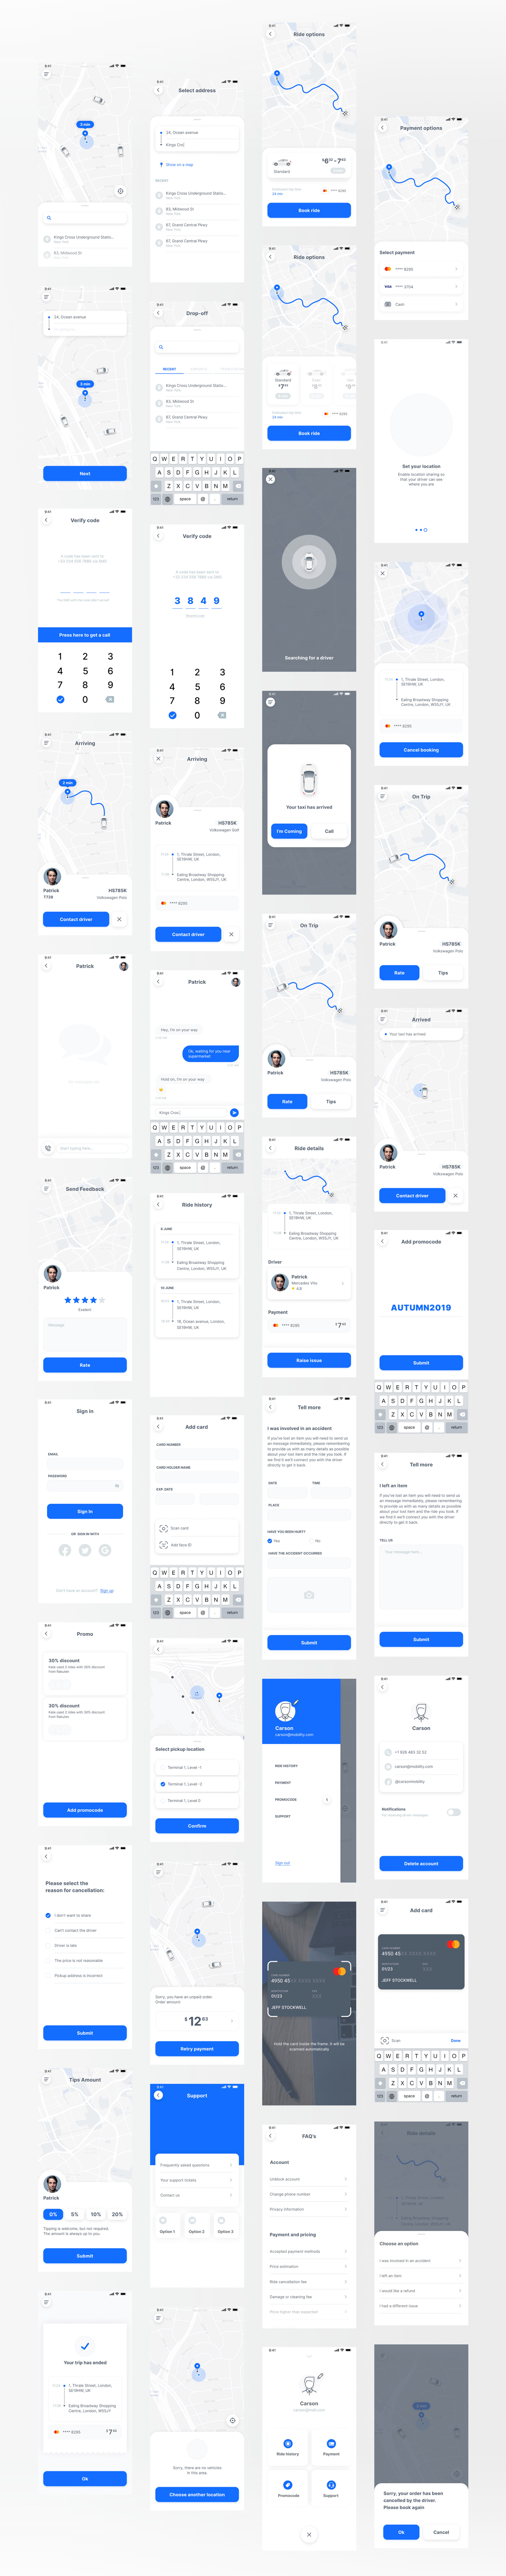 Taxi App UI Kit for Figma - 40+ Figma UI elements which covers the main flows of a taxi app. 13 car type icons.